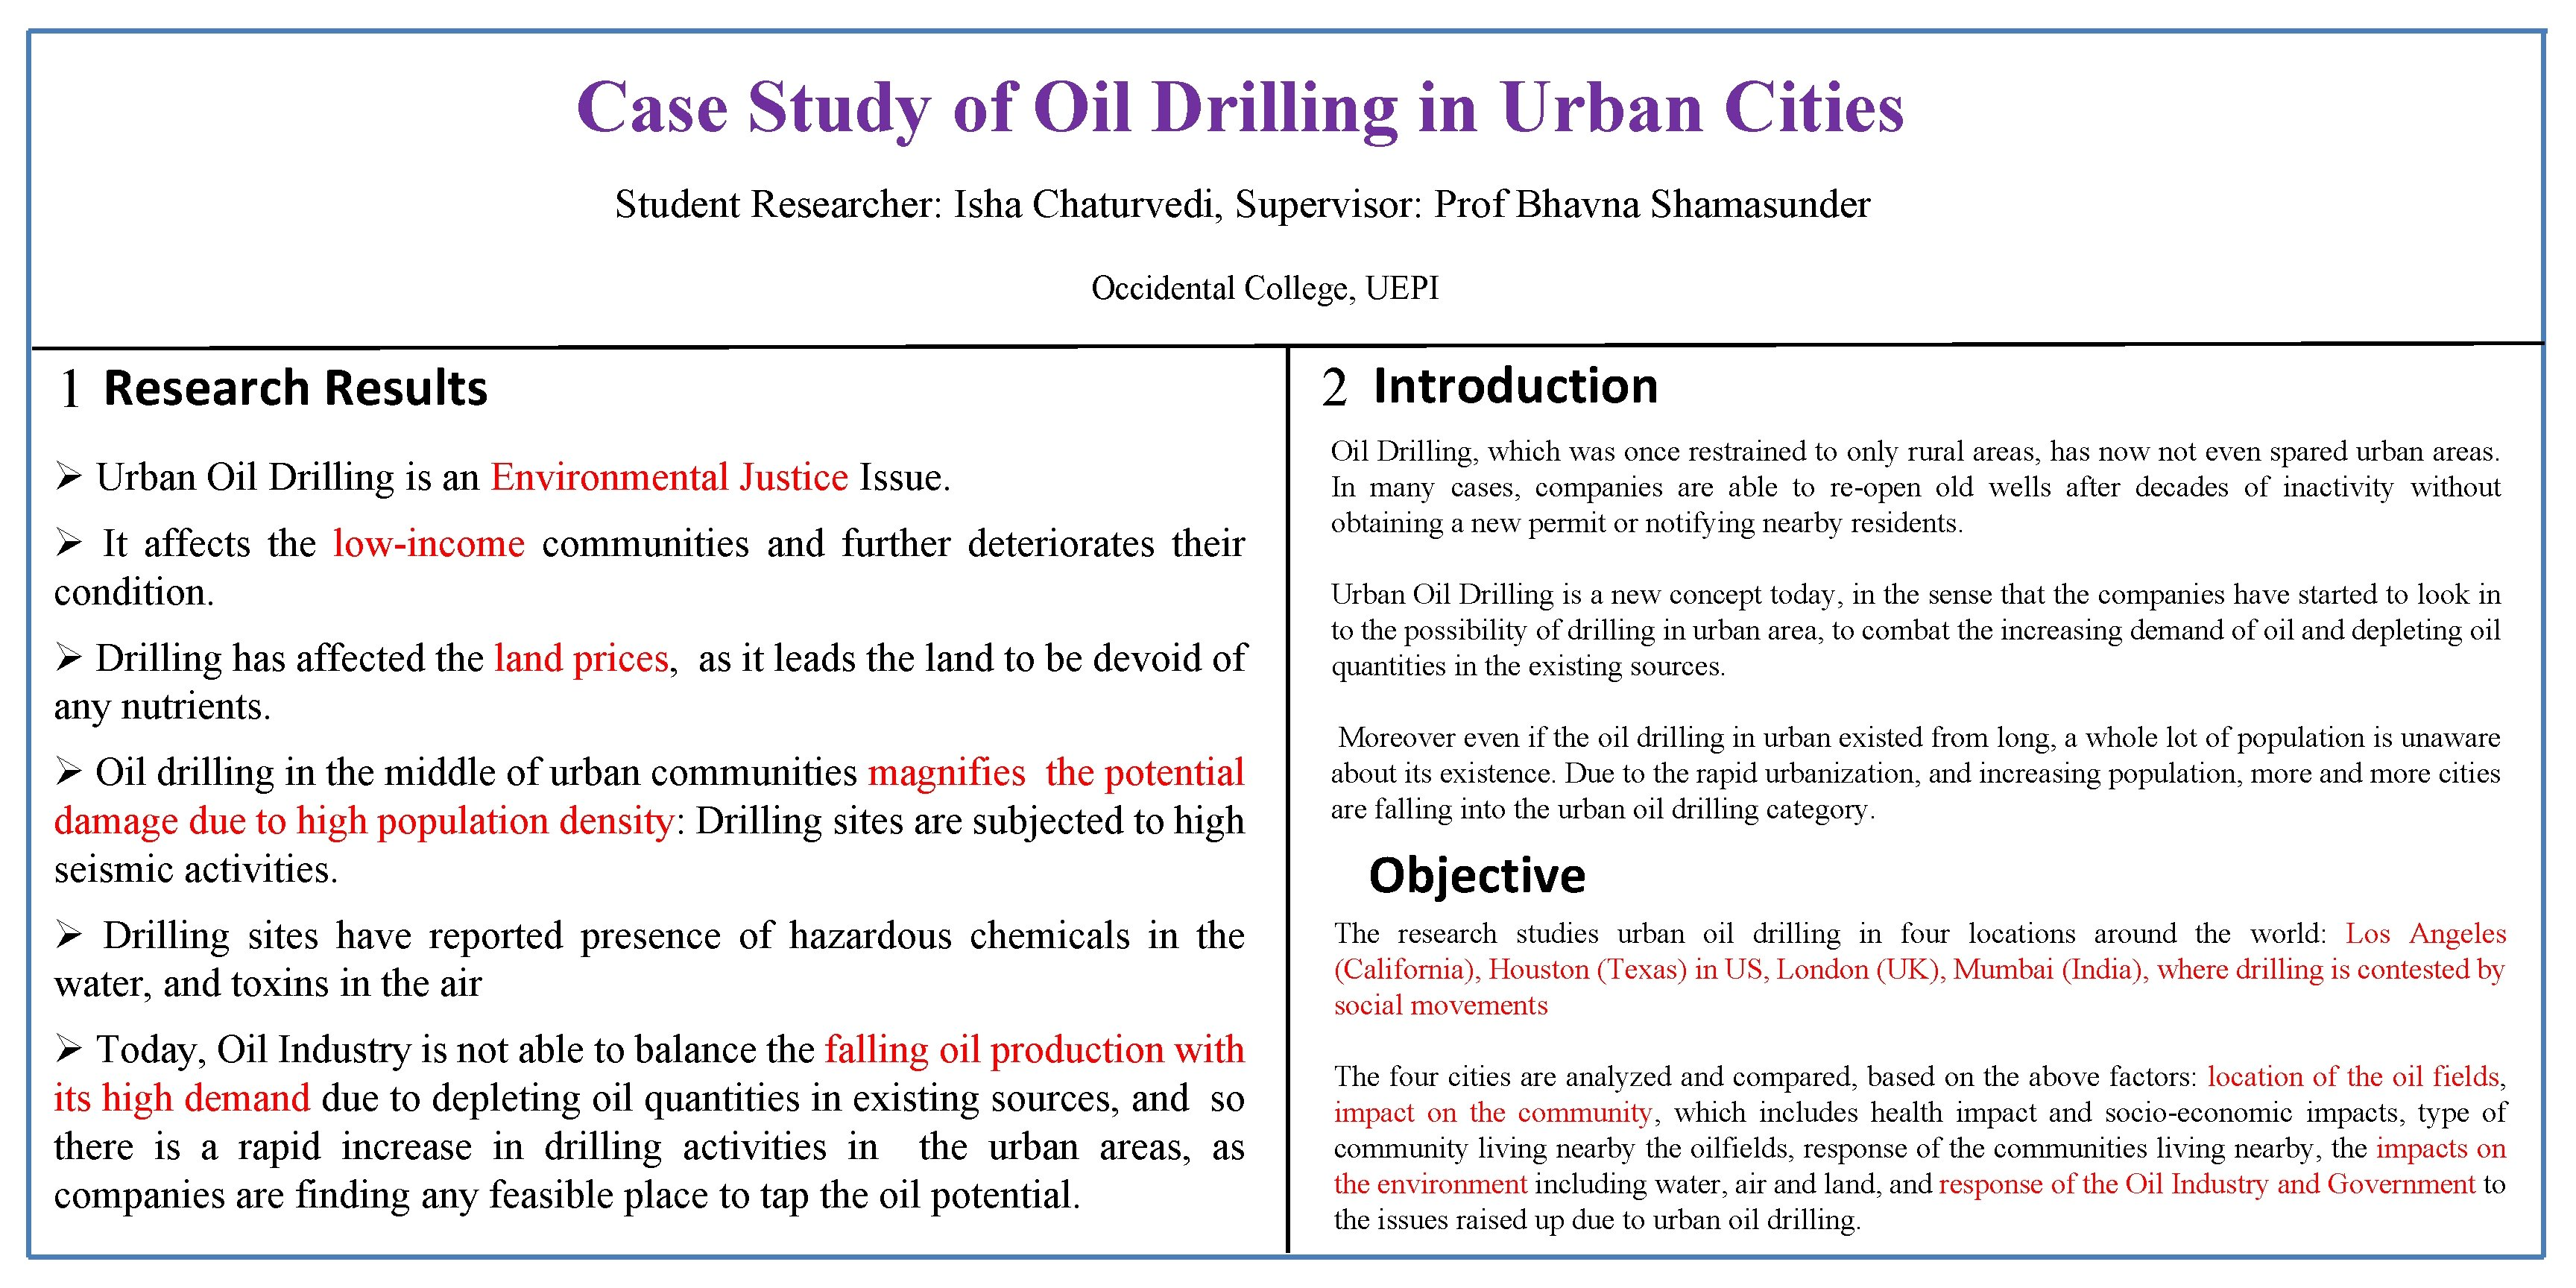 Case Study of Oil Drilling in Urban Cities Student Researcher: Isha Chaturvedi, Supervisor: Prof